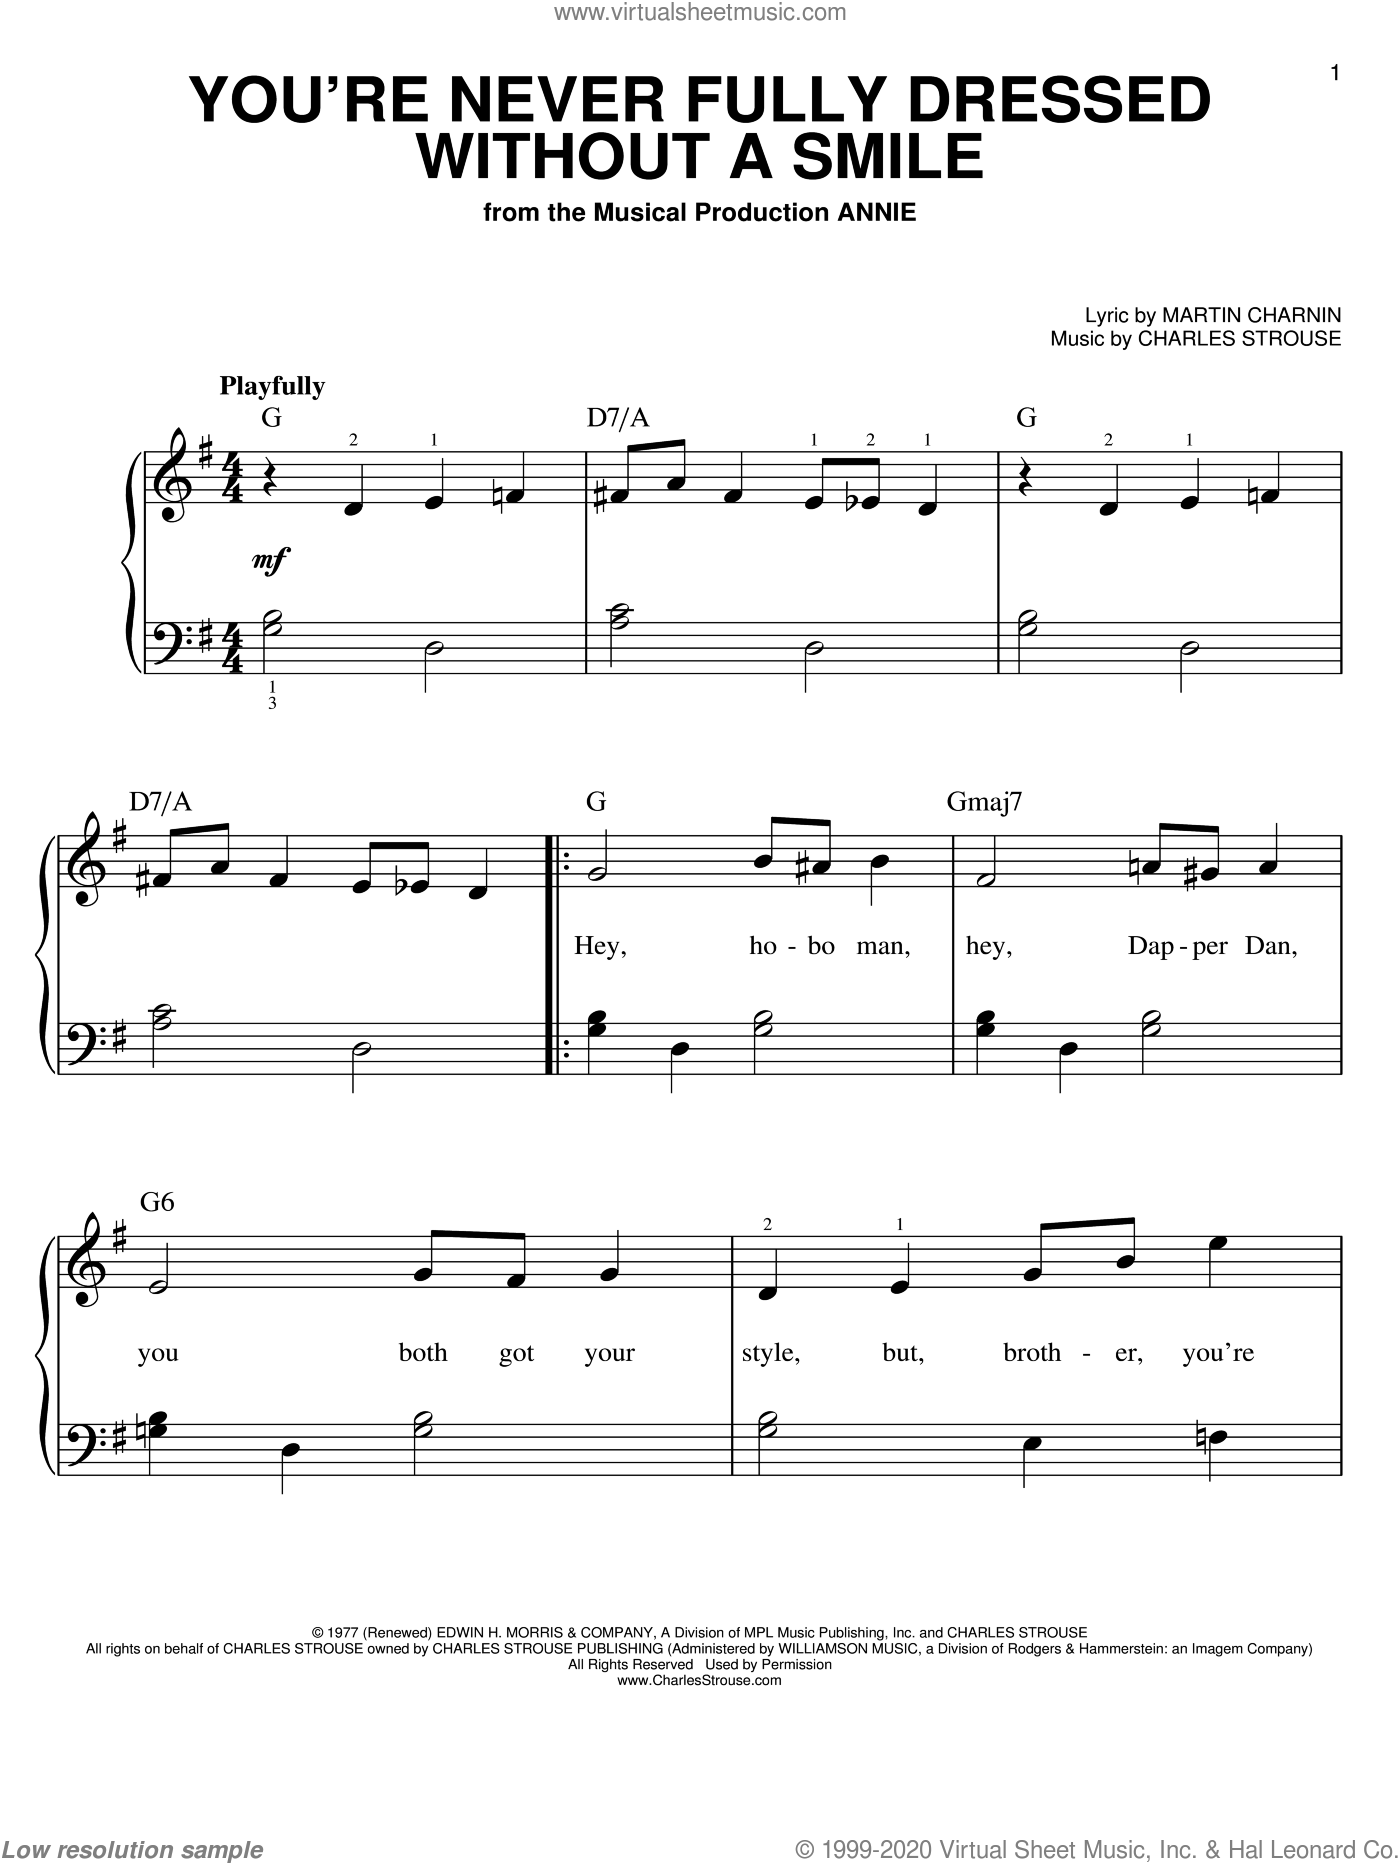 You're Never Fully Dressed Without A Smile sheet music for piano solo by Martin Charnin